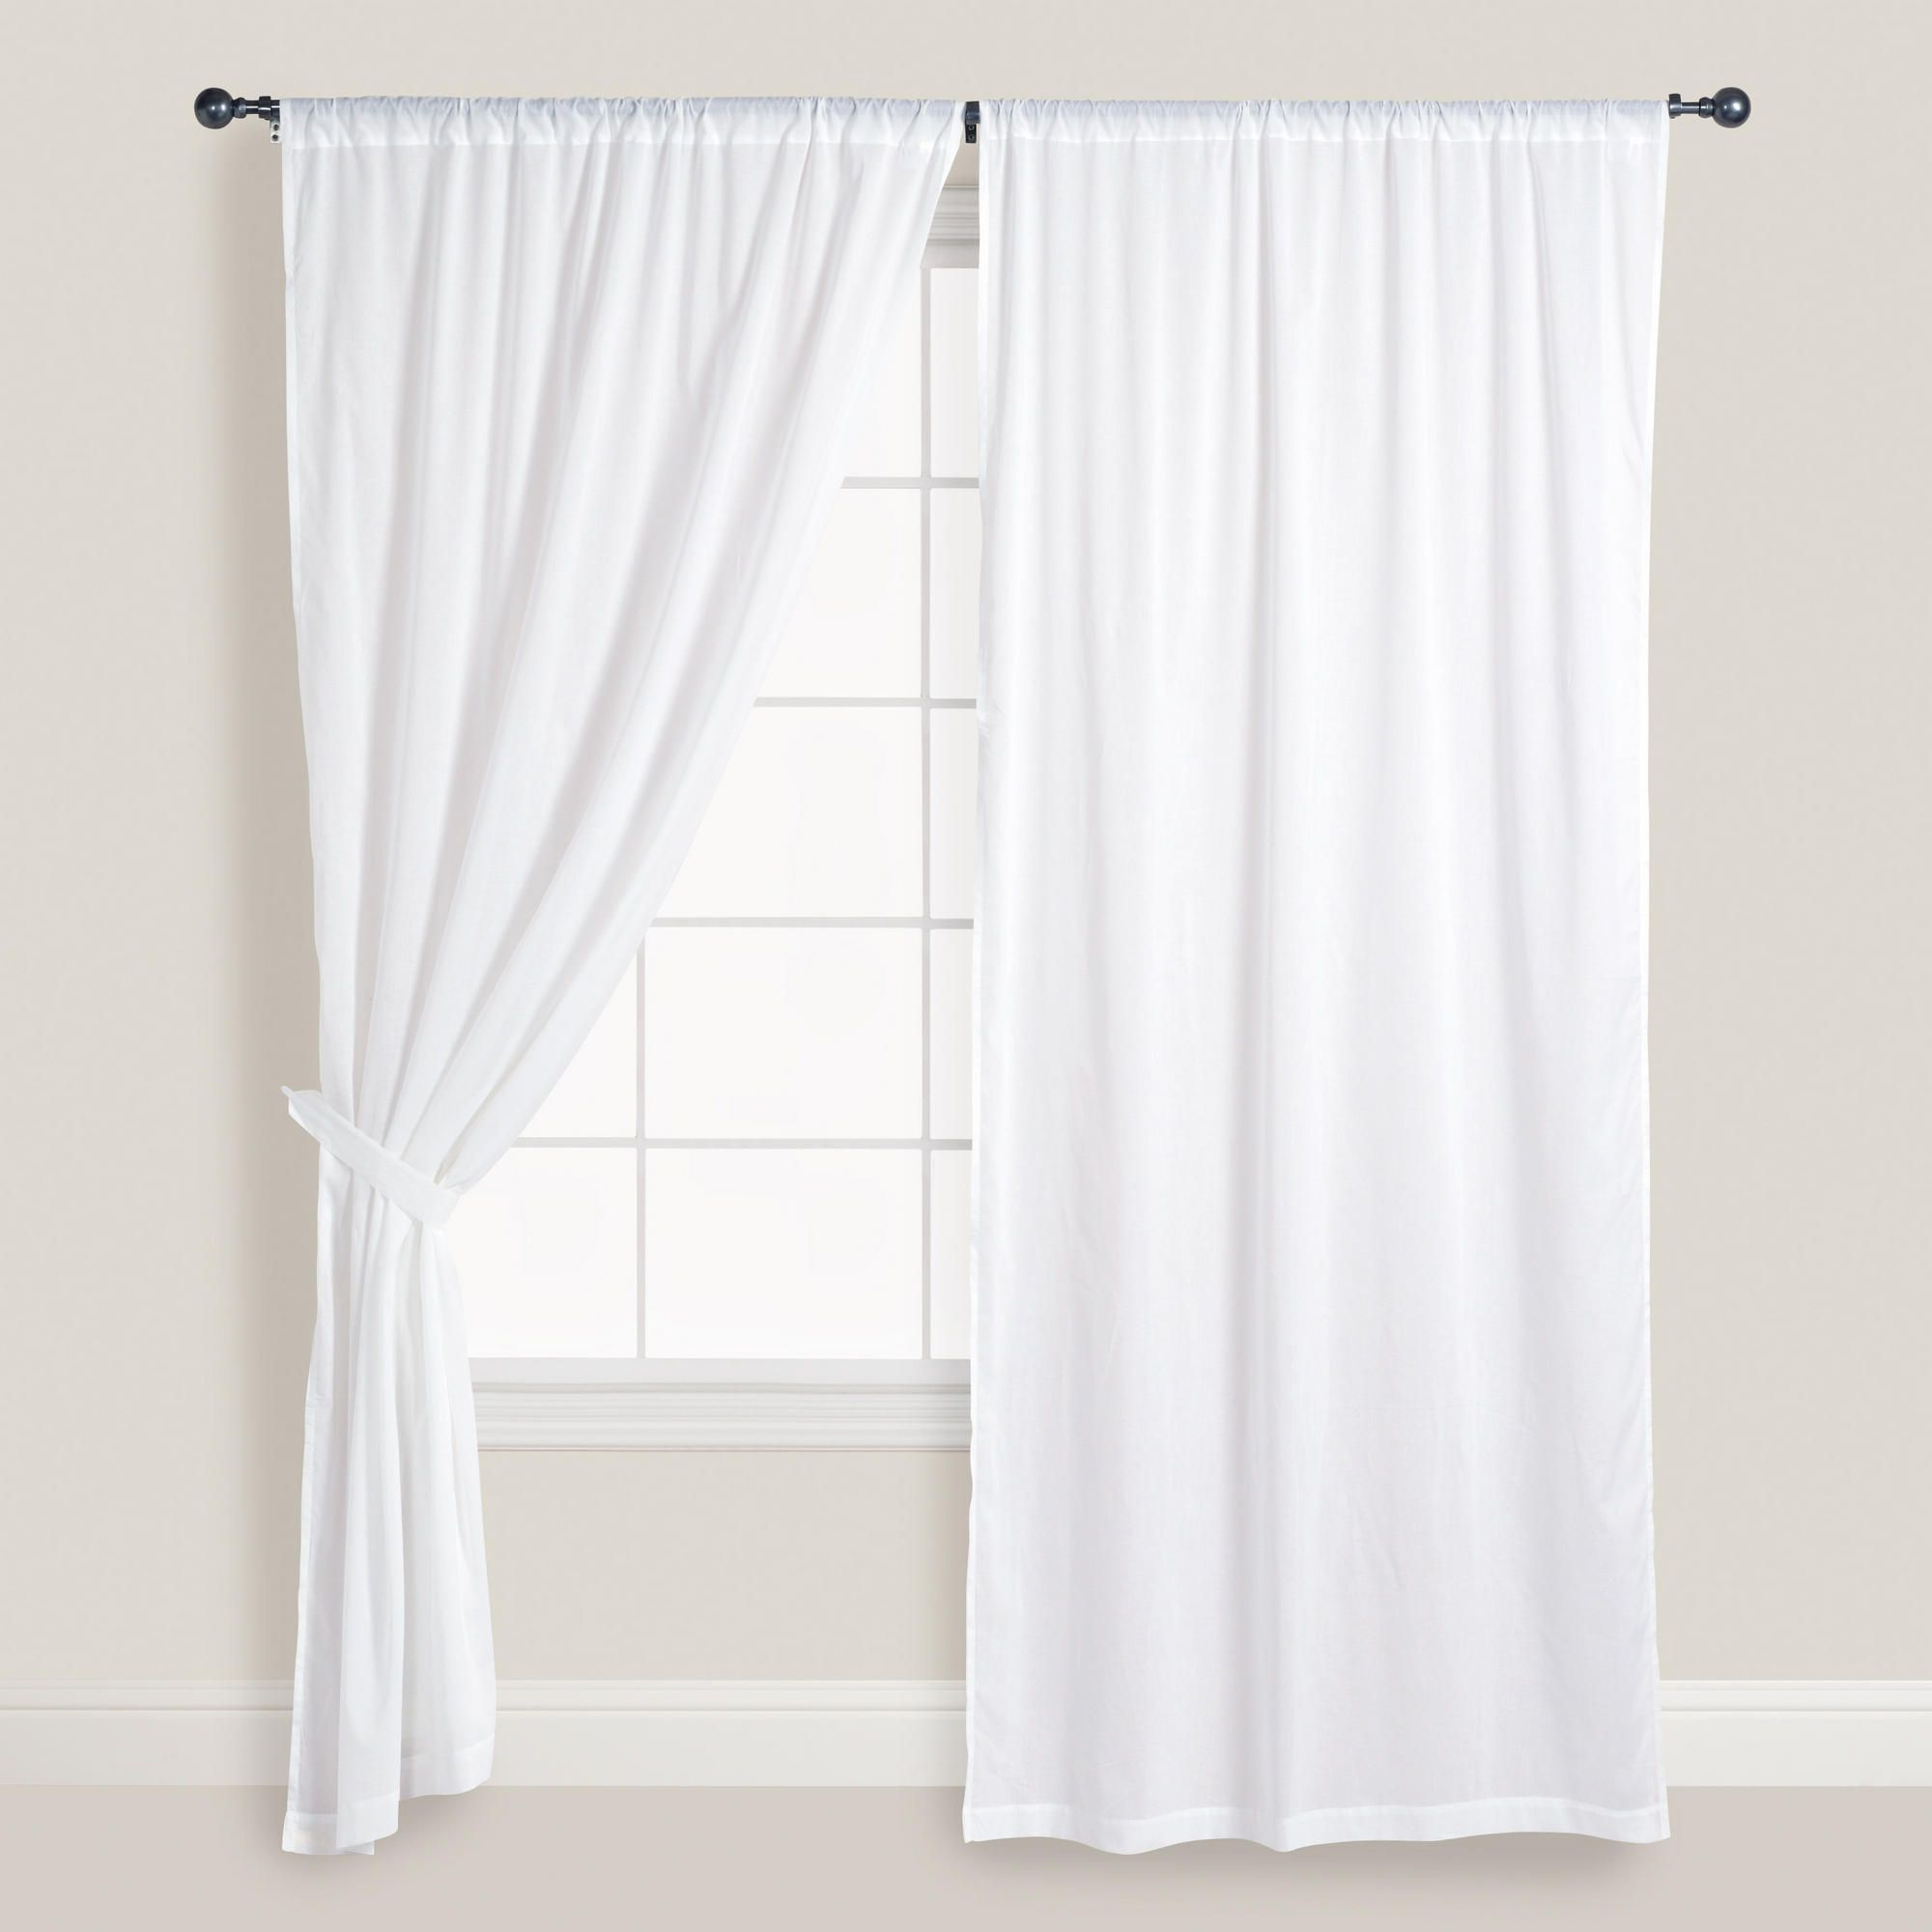 White Cotton Voile Curtains  Set of 2. White Cotton Voile Curtains  Set of 2   Window  Doors and Office plan